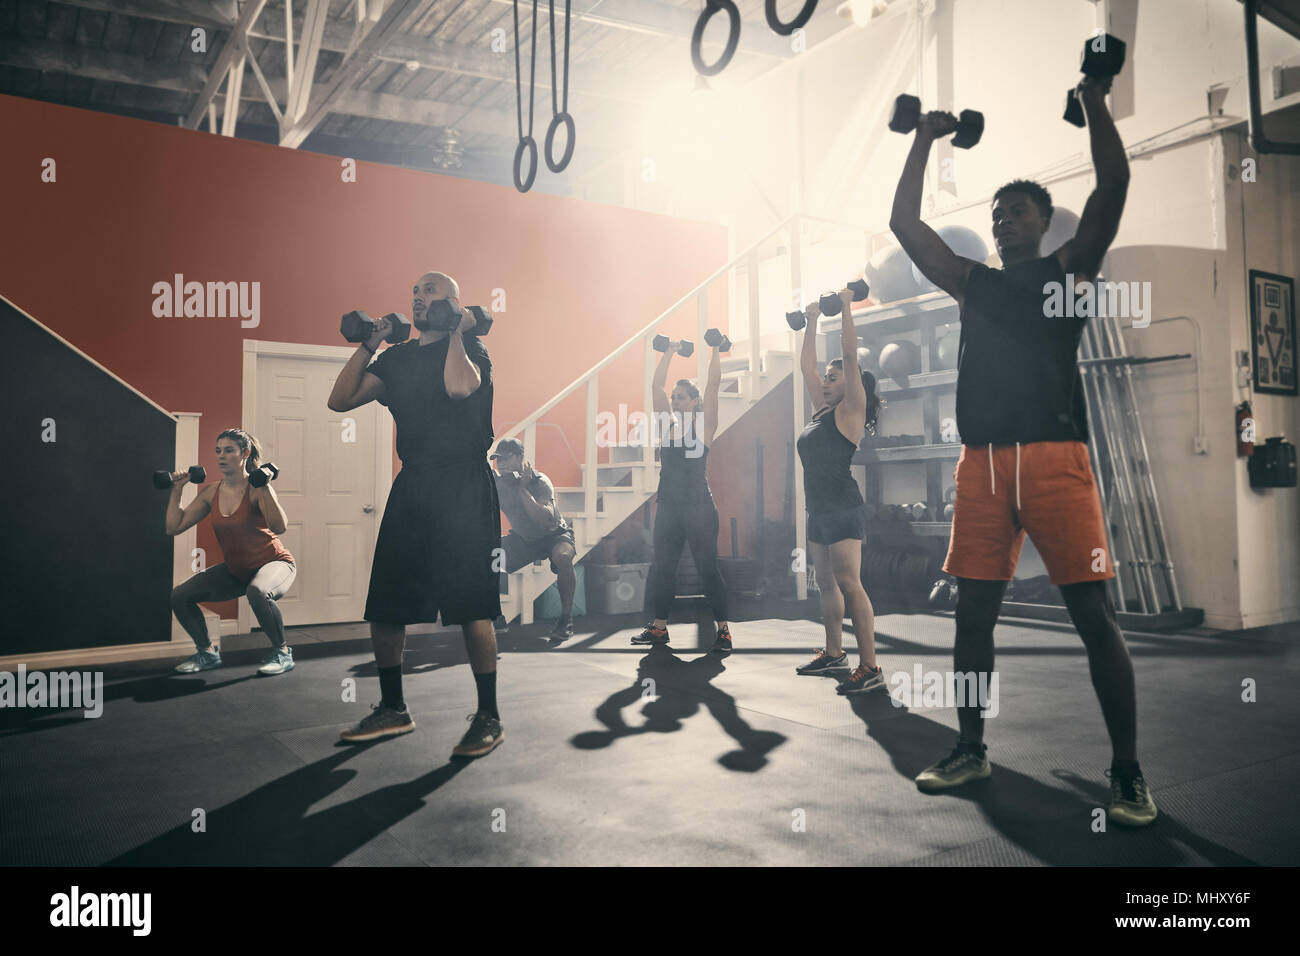 Man using dumbbells in gym - Stock Image